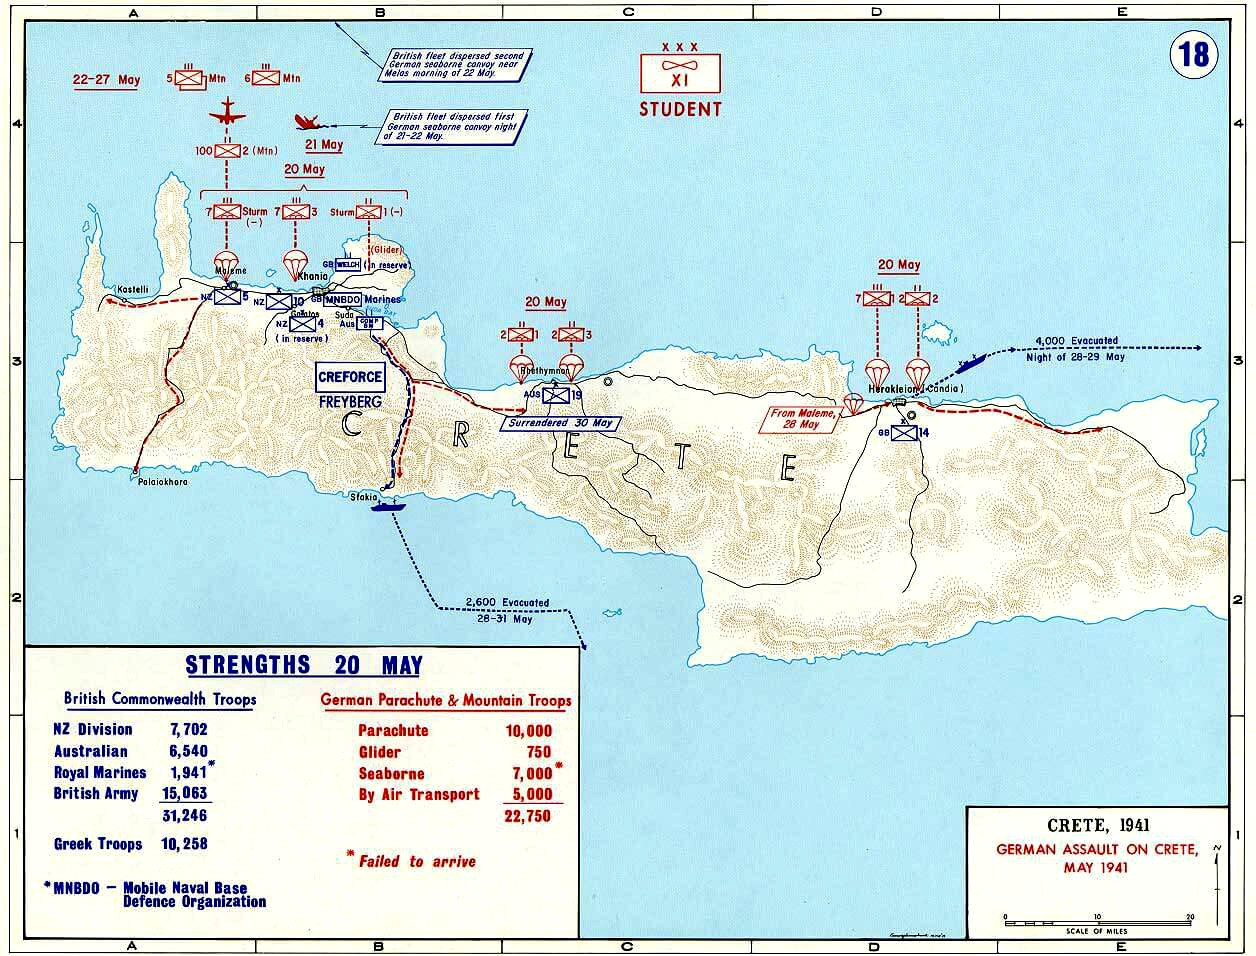 German assault on Crete Bataille de Crete